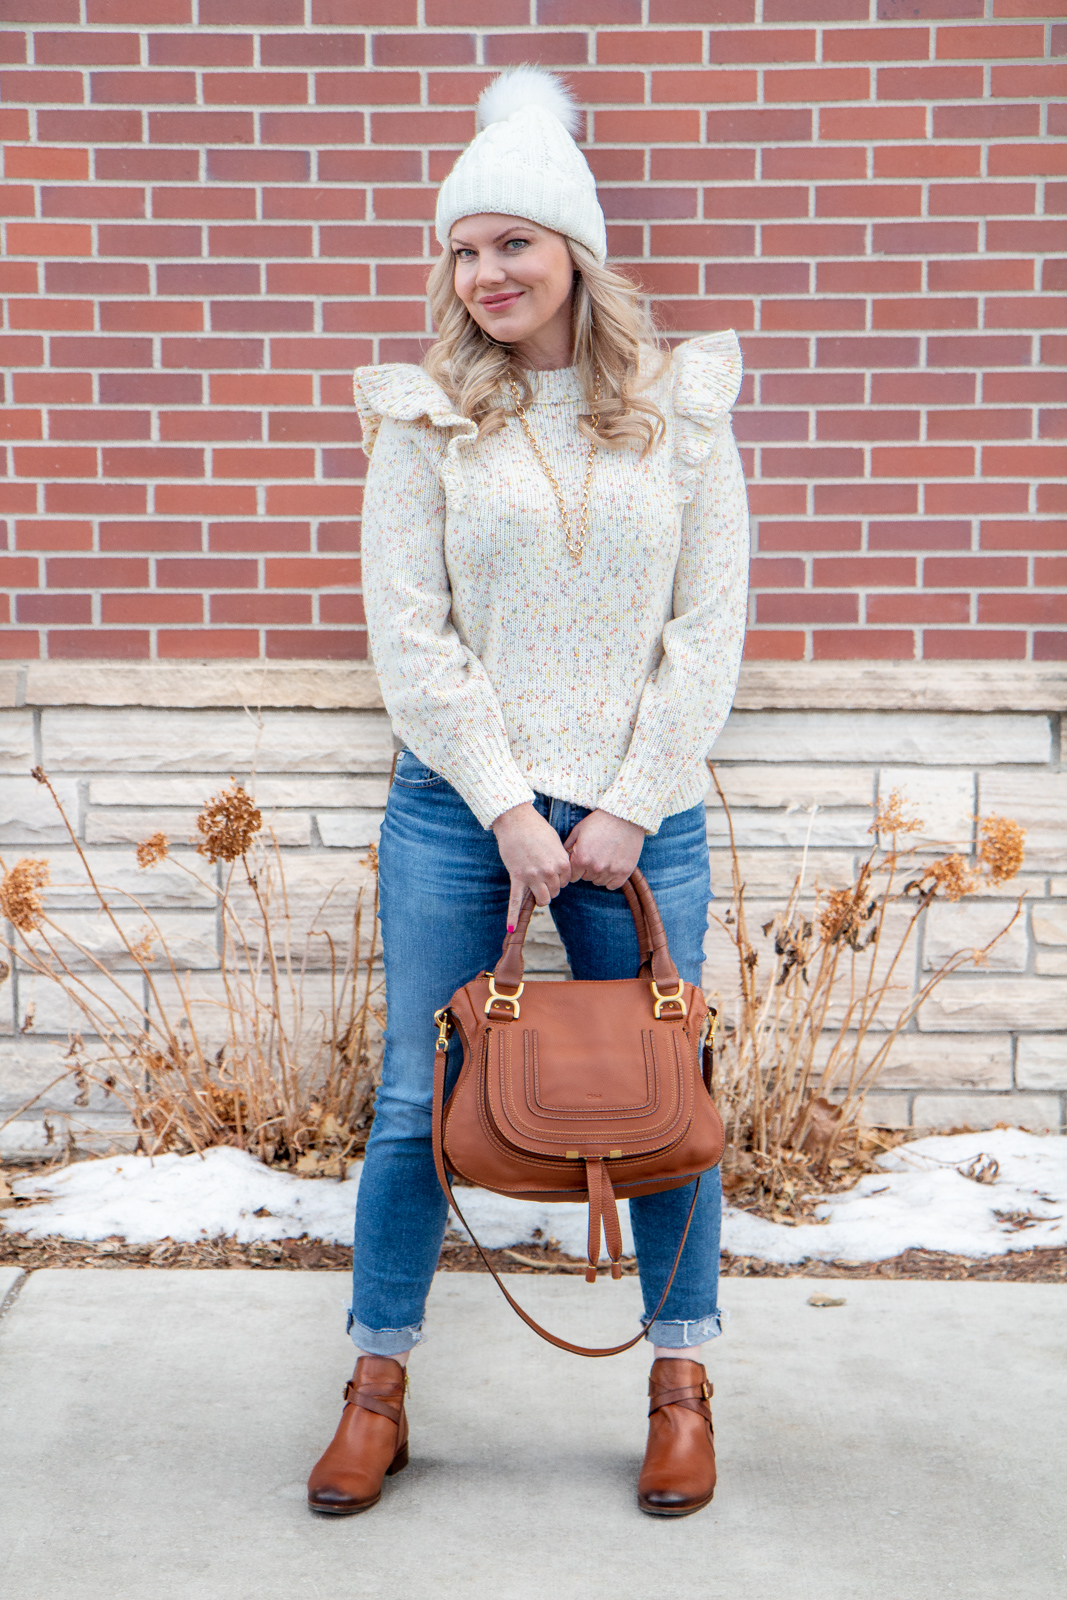 Colorado fashion blogger winter outfits - ruffle sweater